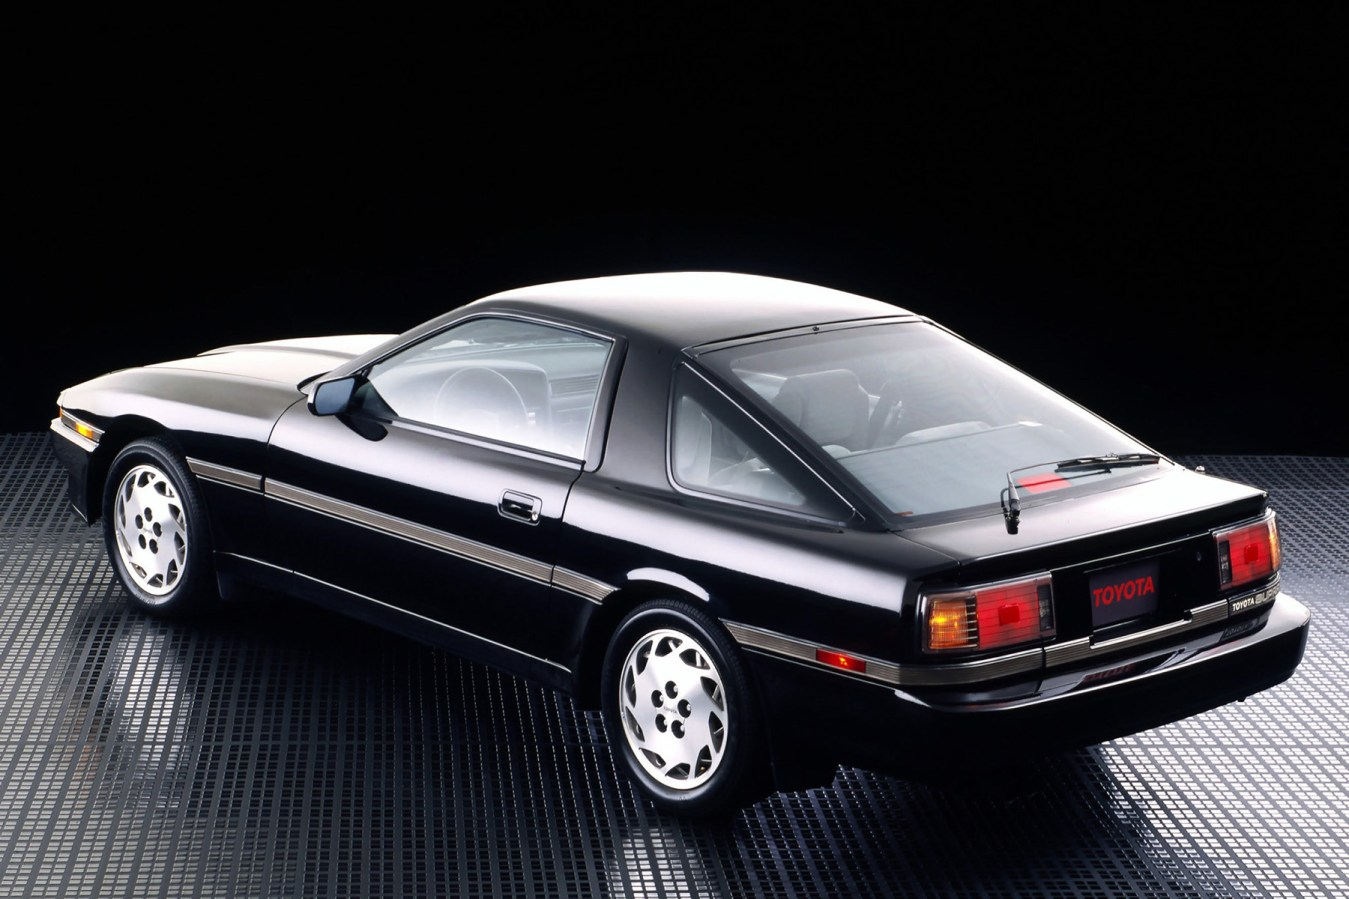 Supra heroes: the story of the Toyota Supra